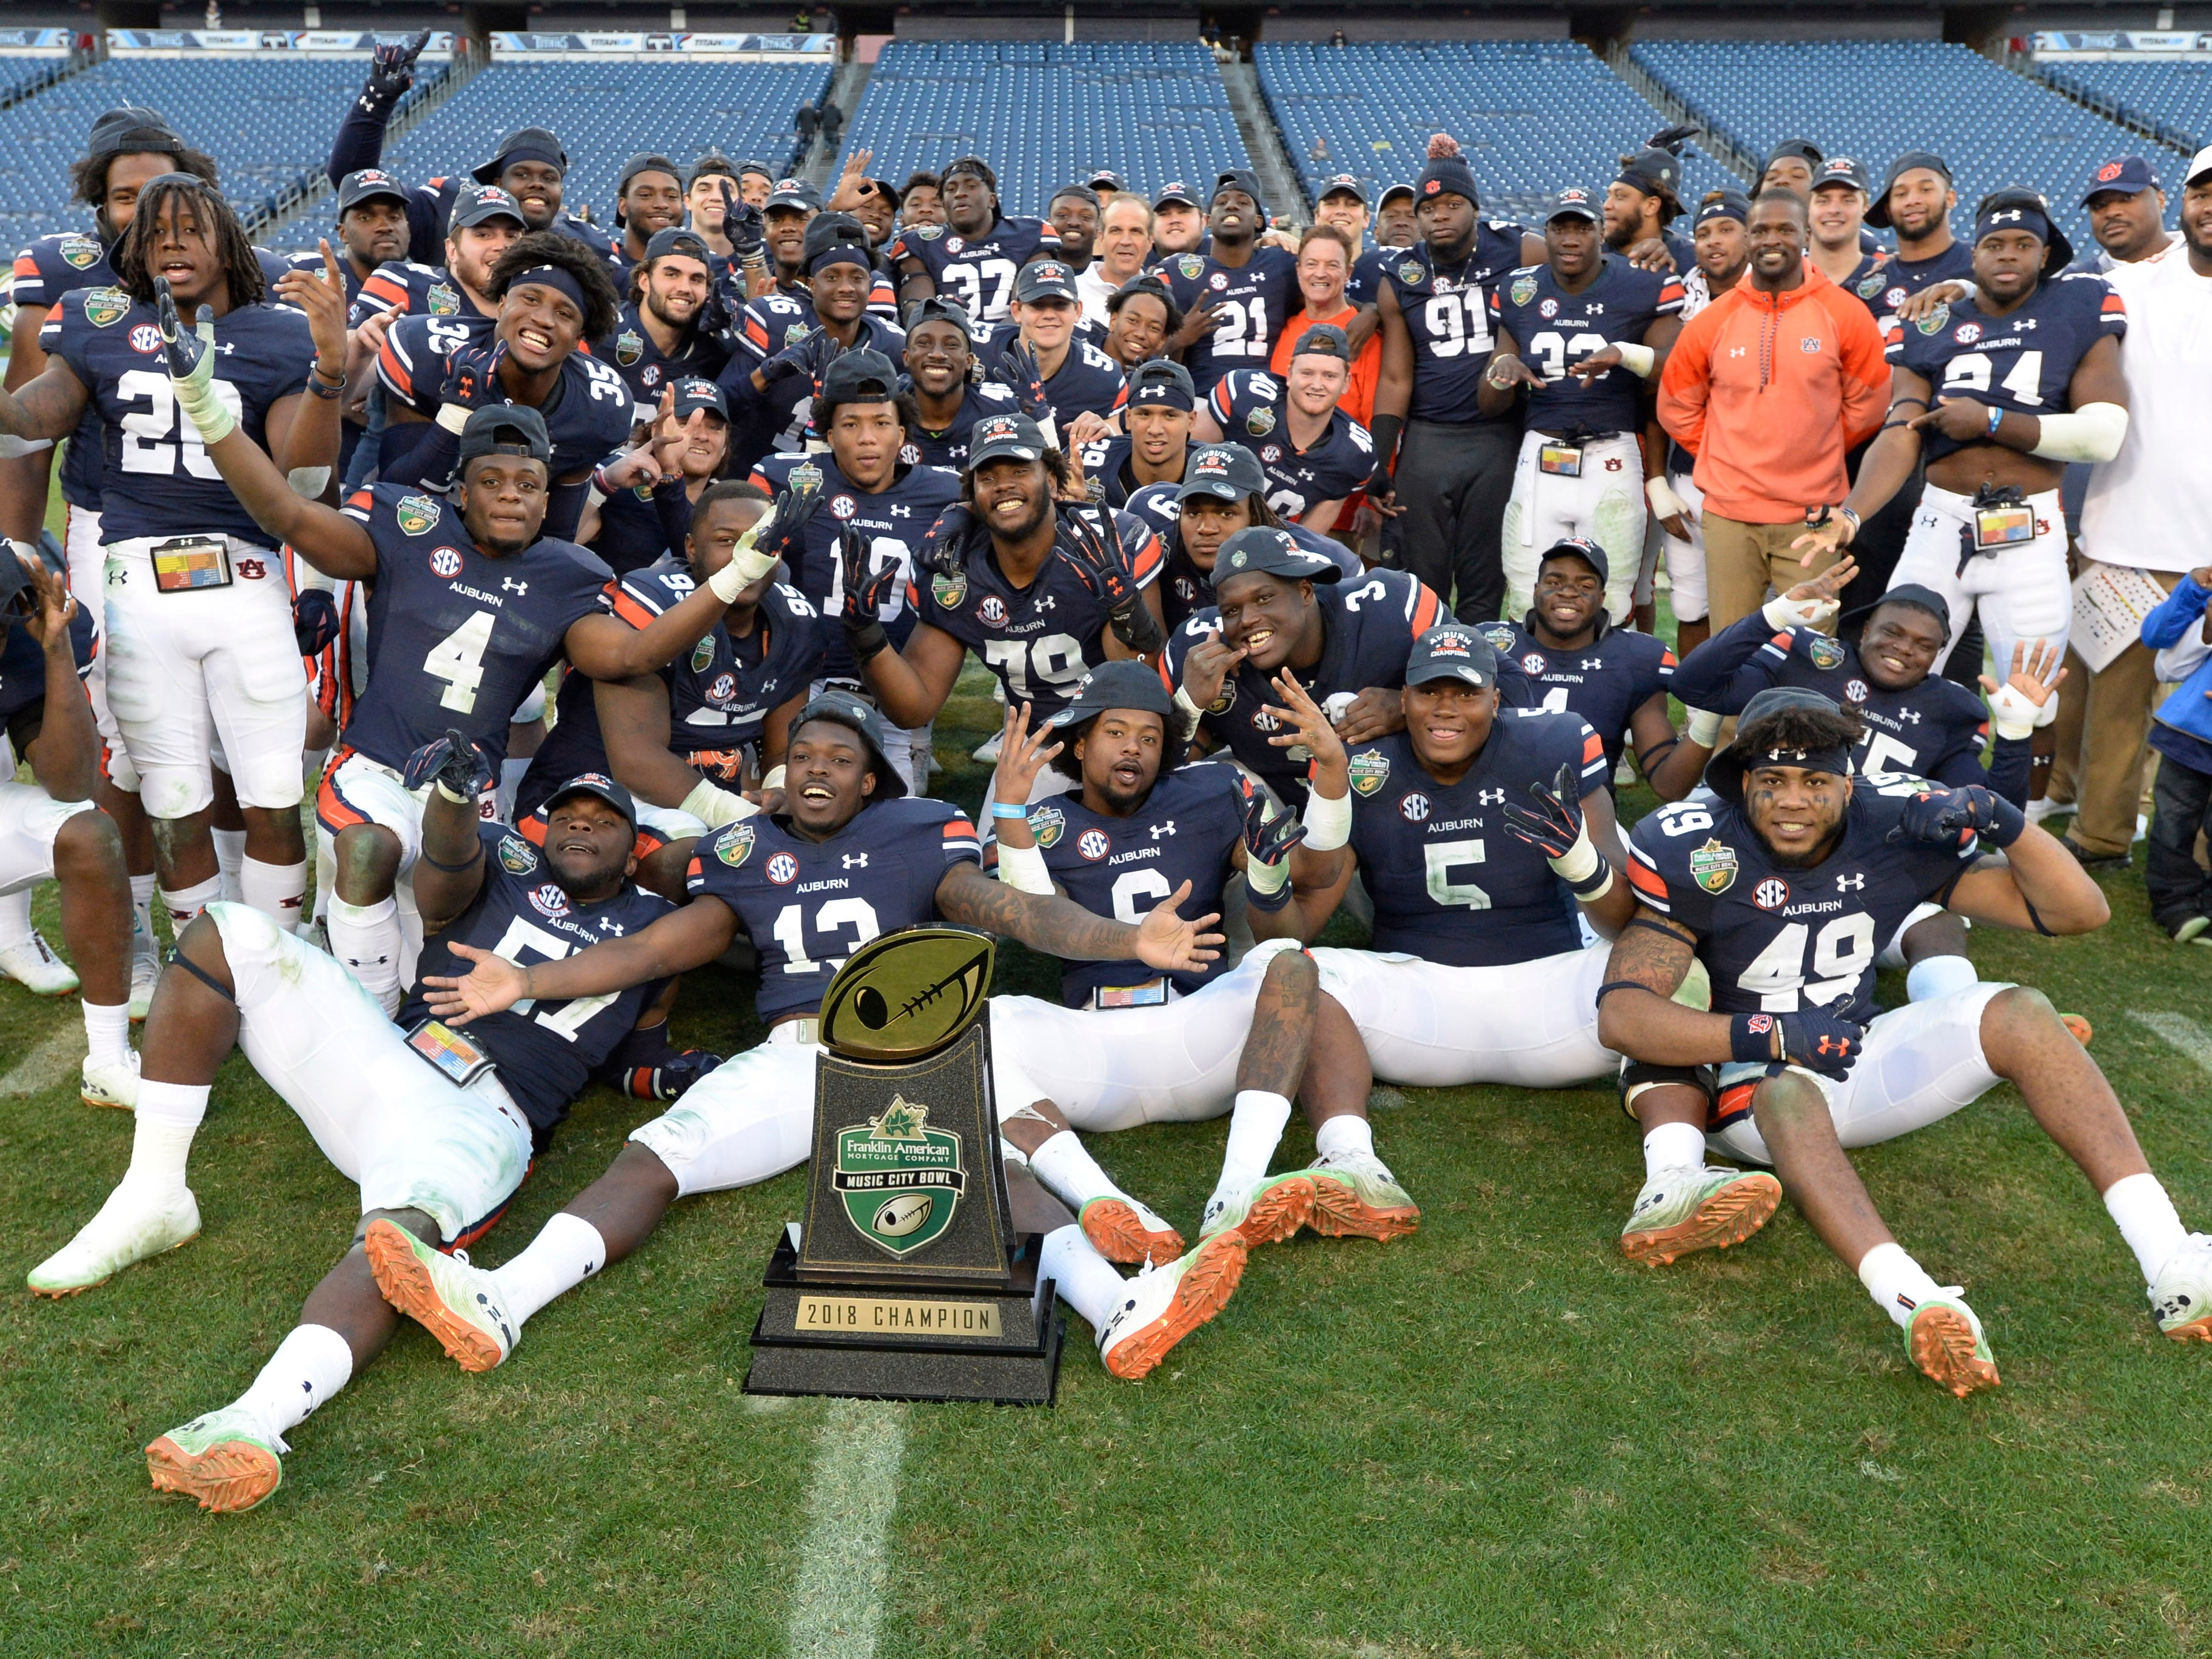 Auburn poses with the bowl trophy after beating Purdue 63-14 in the Music City Bowl NCAA college football game Friday, Dec. 28, 2018, at Nissan Stadium in Nashville, Tenn.